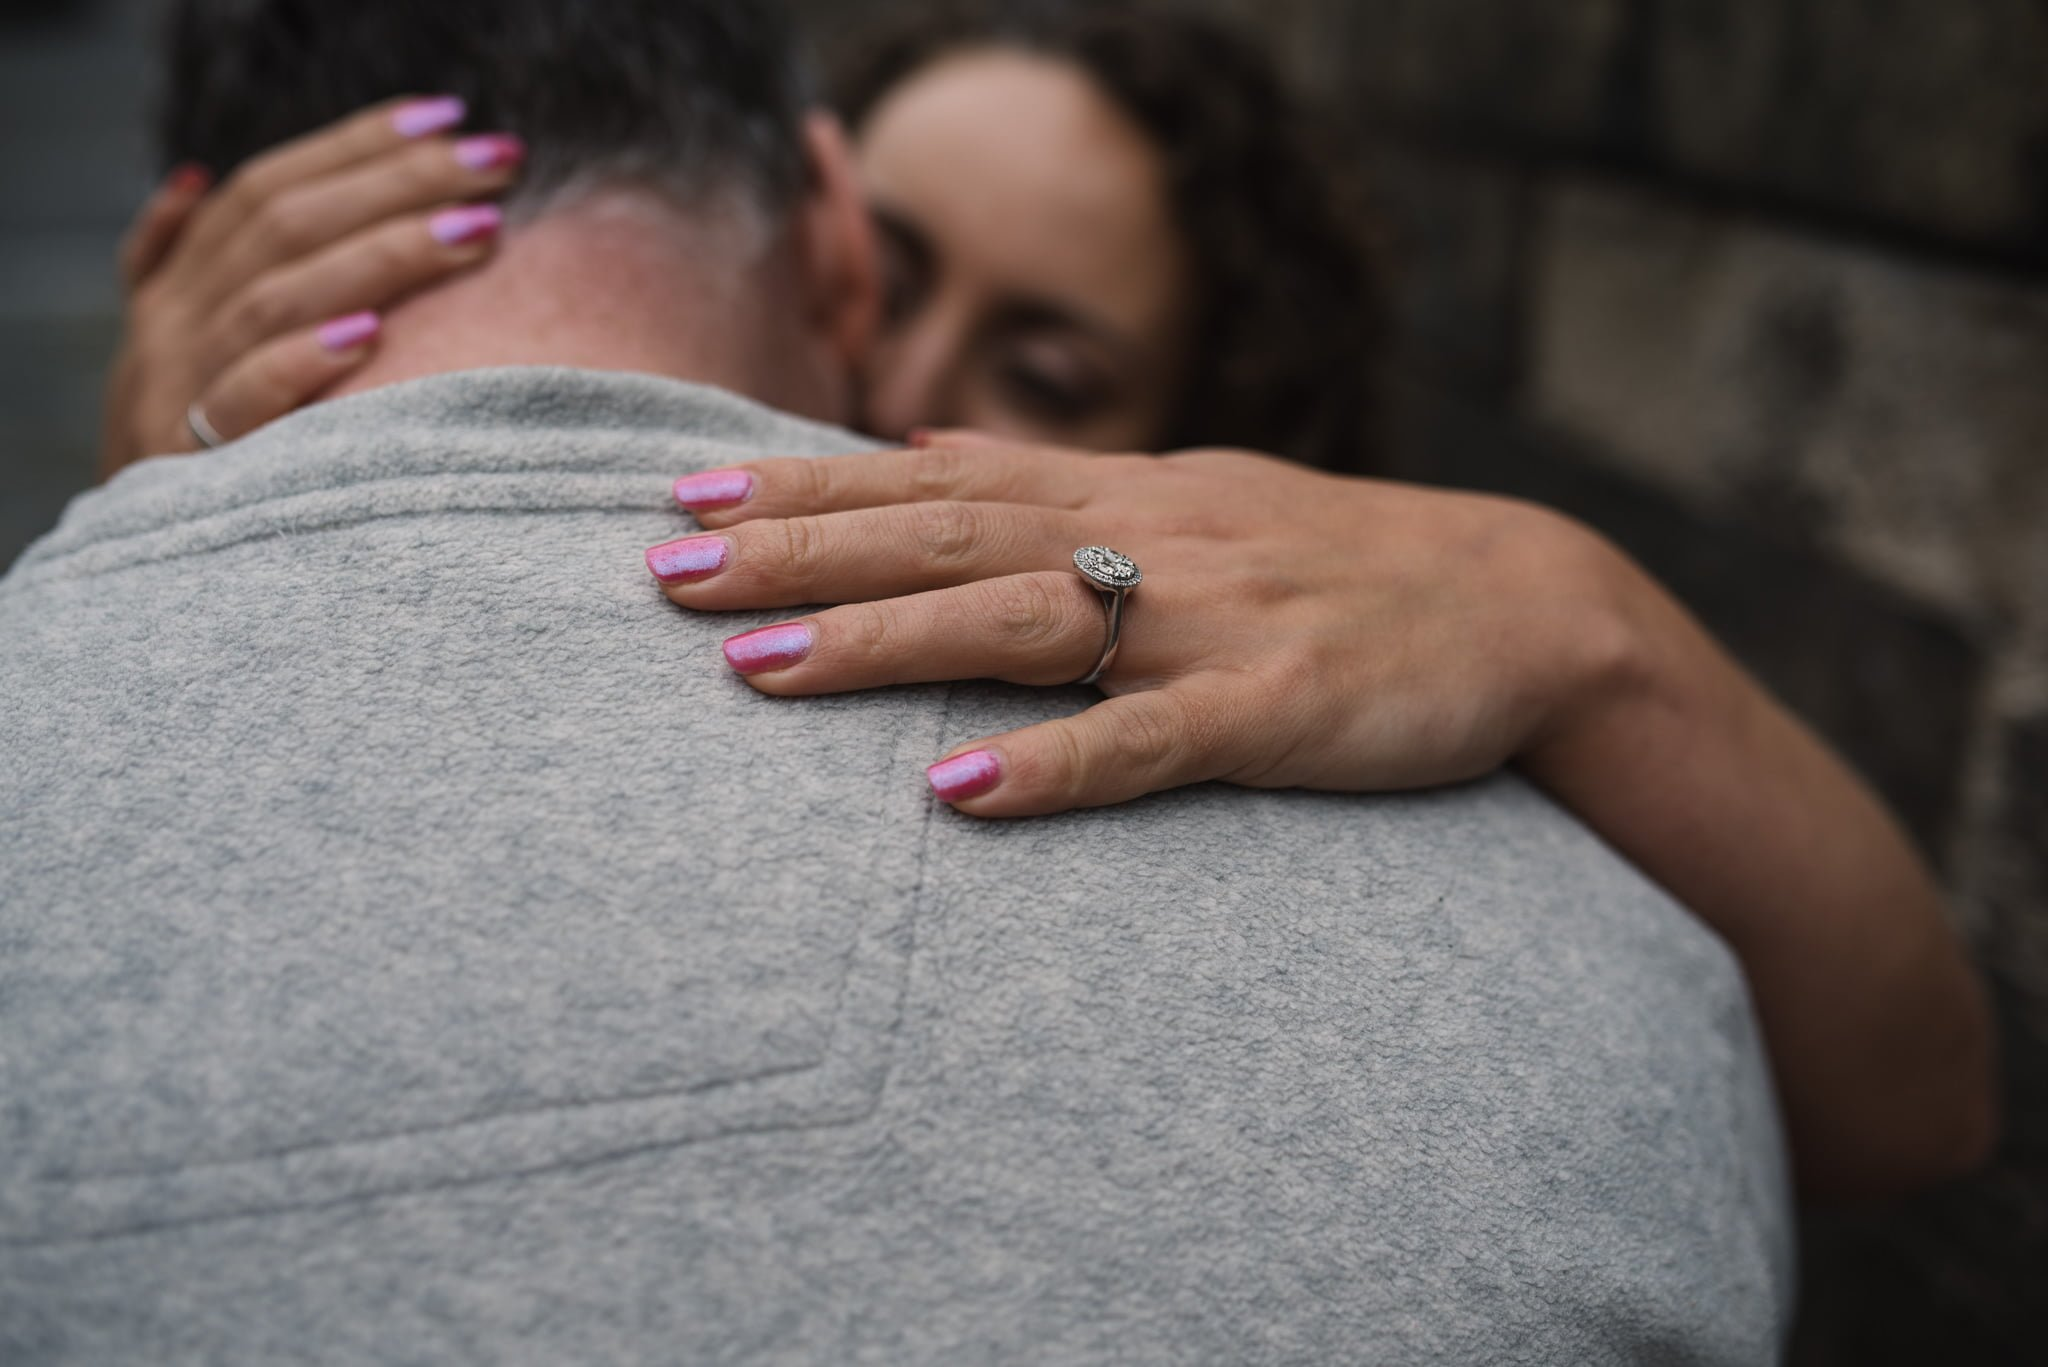 couple embracing with engagement ring